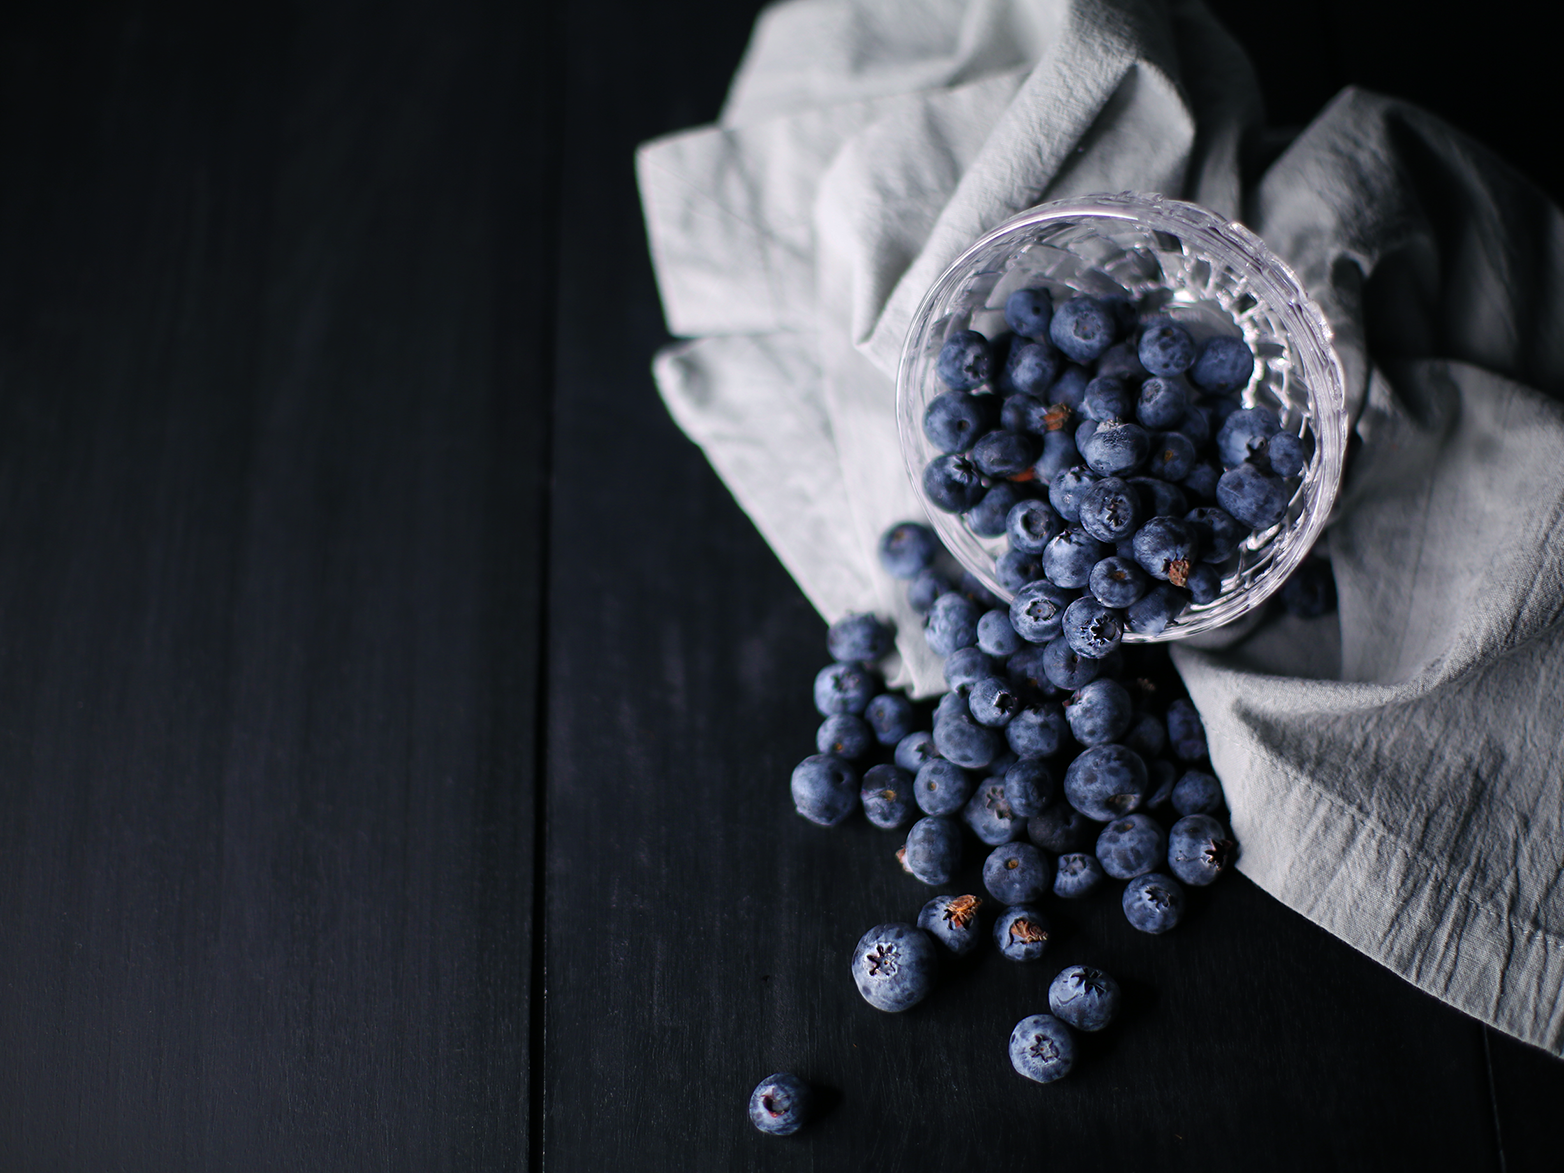 Blueberries food styling food photography food and drink food color canon 50mm f1.4 canon 5d mark iii adobe photoshop